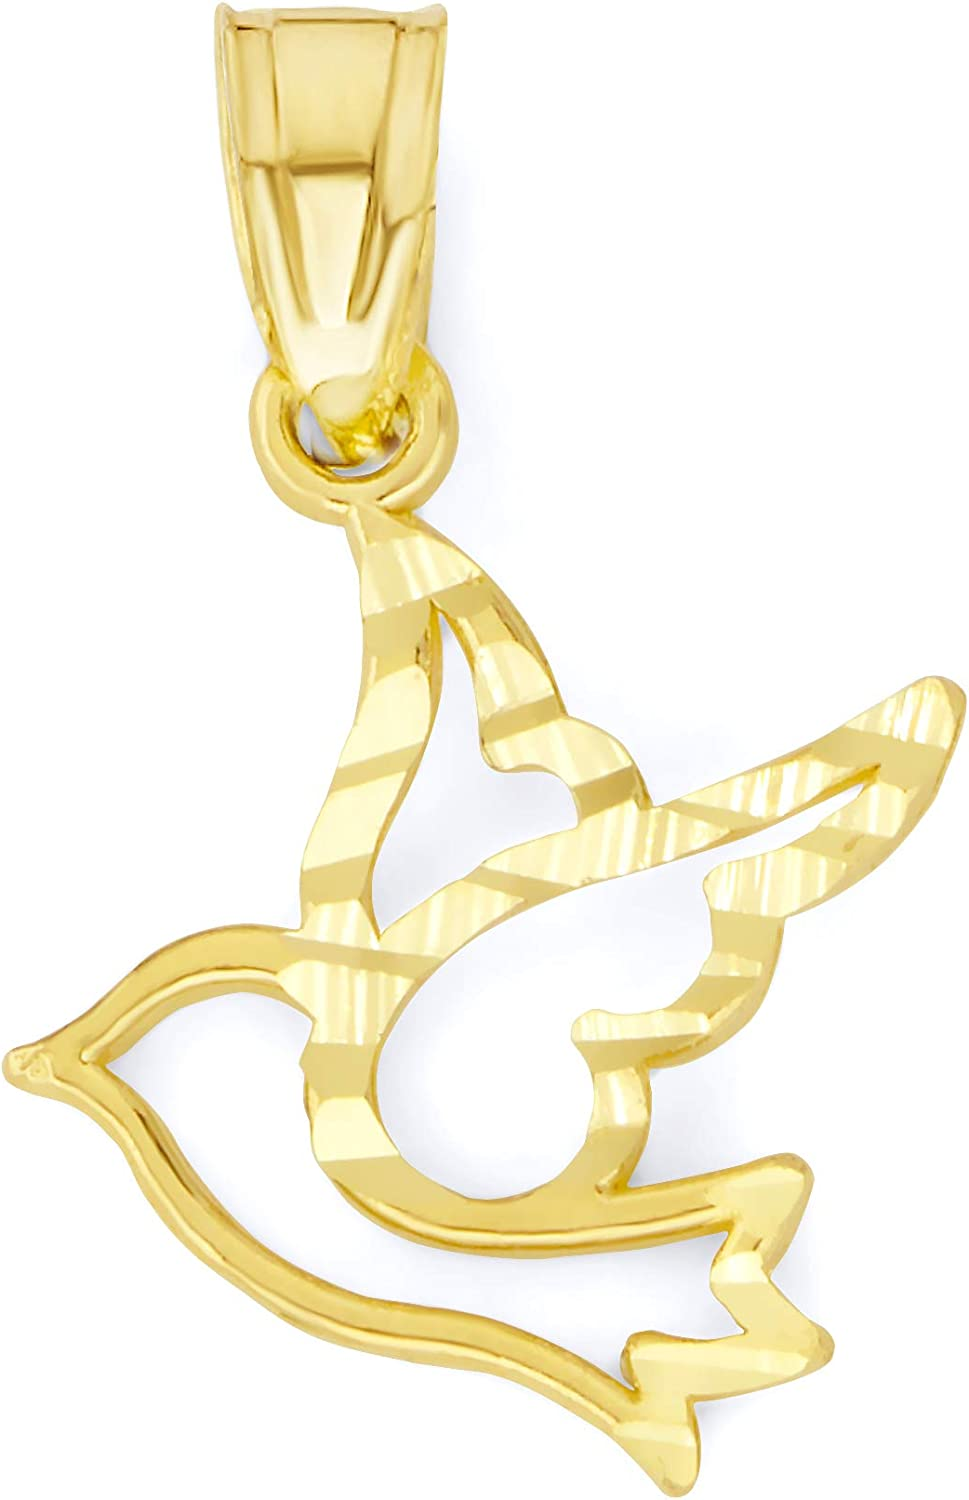 Ice on Fire Jewelry 10k Real Solid Gold Dove Pendant, Dainty Diamond Cut Charm for Women Gifts for Her